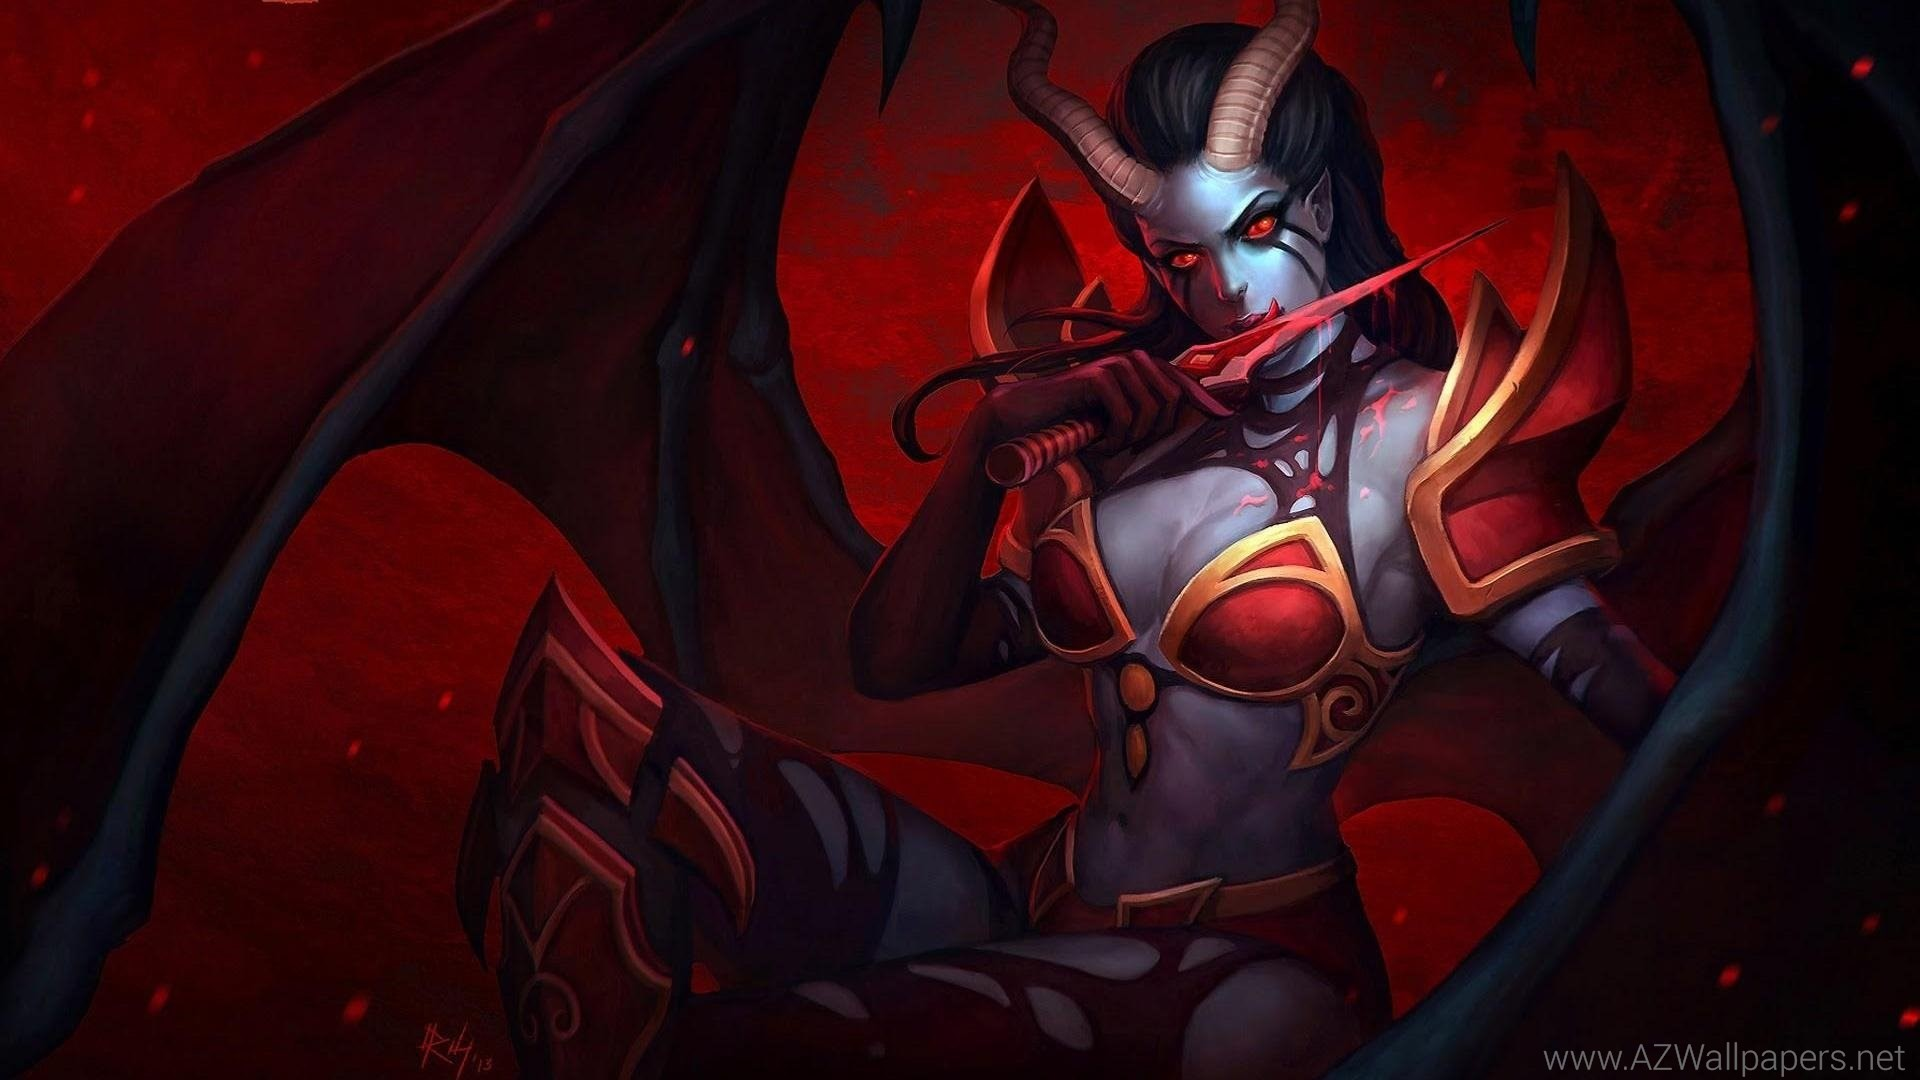 1920x1080 Succubus Dota 2 HD Wallpapers, Desktop Backgrounds, Mobile .